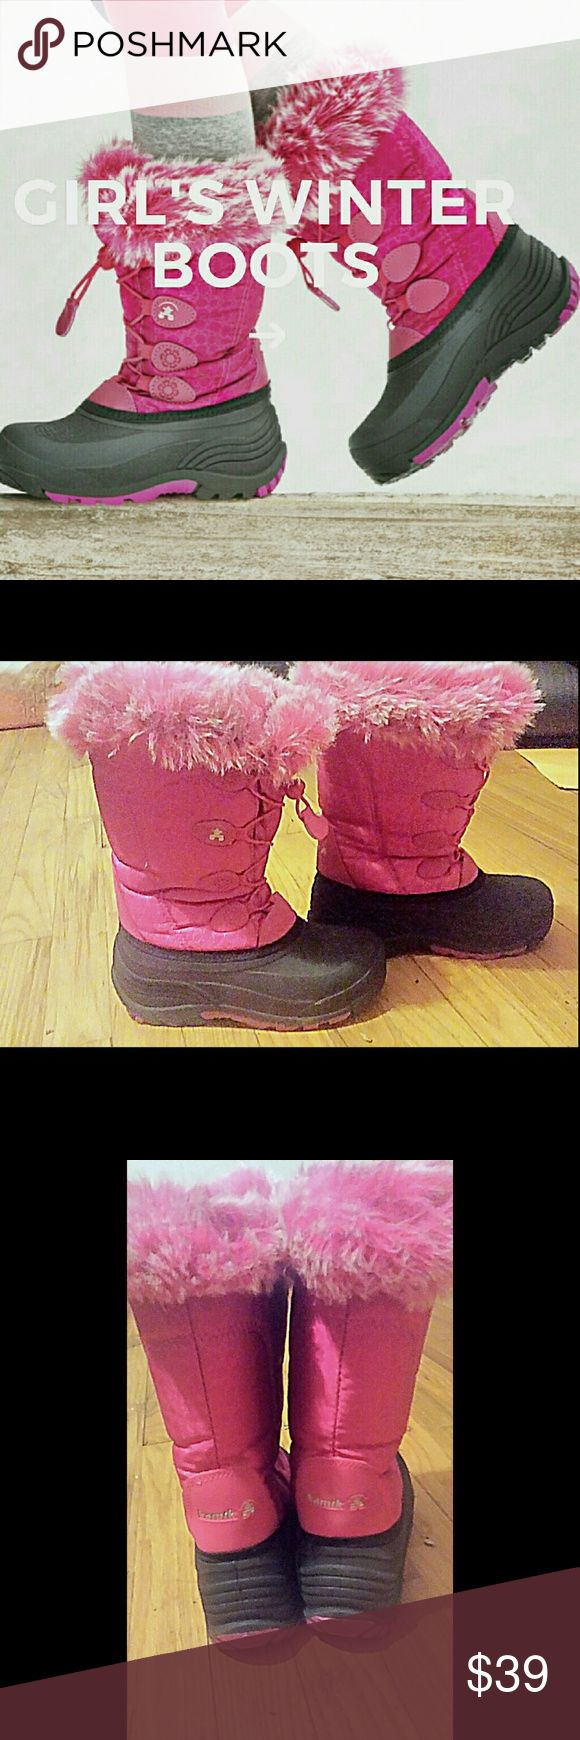 ❄🌬Girls Pink Kamik Winter Boots⛄⛇ Waterproof snow boots are all you need to keep your feet happy. Featuring seam-sealed waterproof construction and 3M? Thinsulate? insulation for warmth. EUC Weight: 944 g per pair Temperatue Rated: -40?C Waterproof nylon upper with faux fur snow collar Waterproof gusset tongue with ghillie lacing loop system Fixed 200B 3M? Thinsulate? and foam insulation Soft Faux fur lining Removable Kamik comfort molded EVA insole PEAK synthetic rubber outsole. WILLING TO…